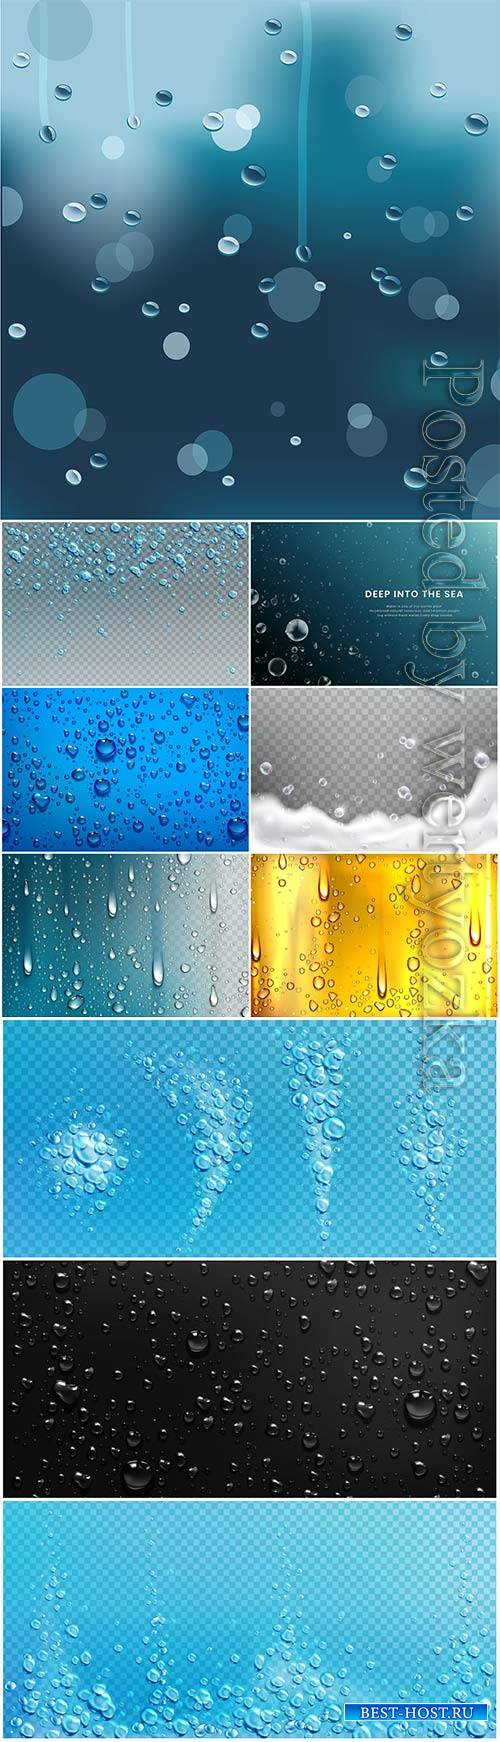 Water droplets vector background